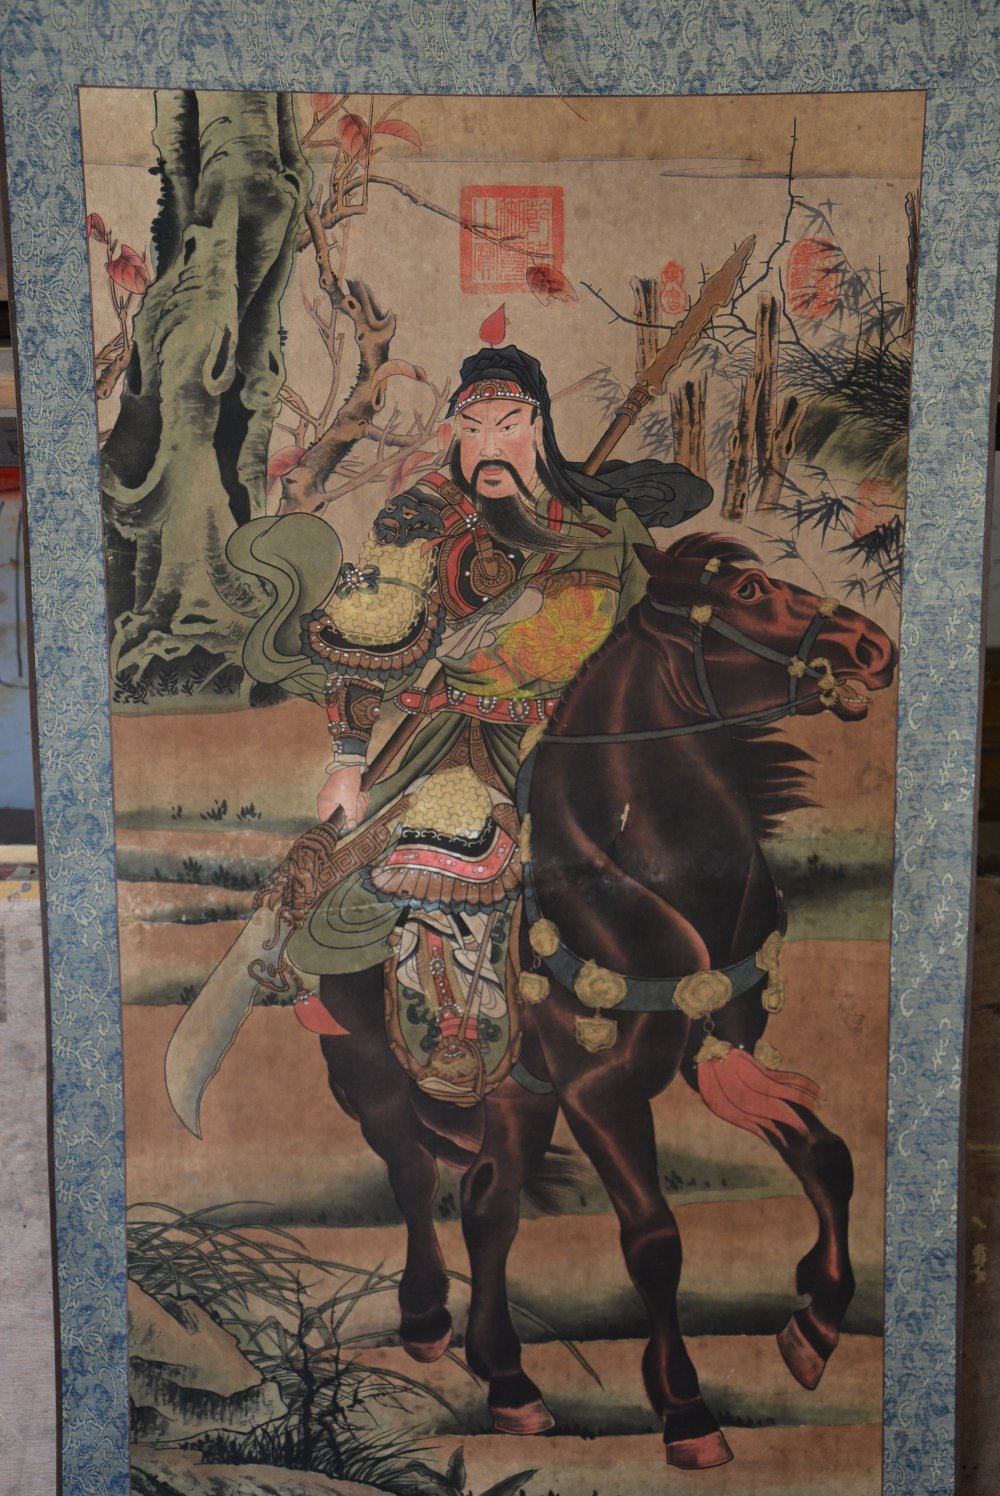 Hand-painted Chinese paintings, picture the long axis of the Qing Dynasty in China,GuanYu, free shippingHand-painted Chinese paintings, picture the long axis of the Qing Dynasty in China,GuanYu, free shipping